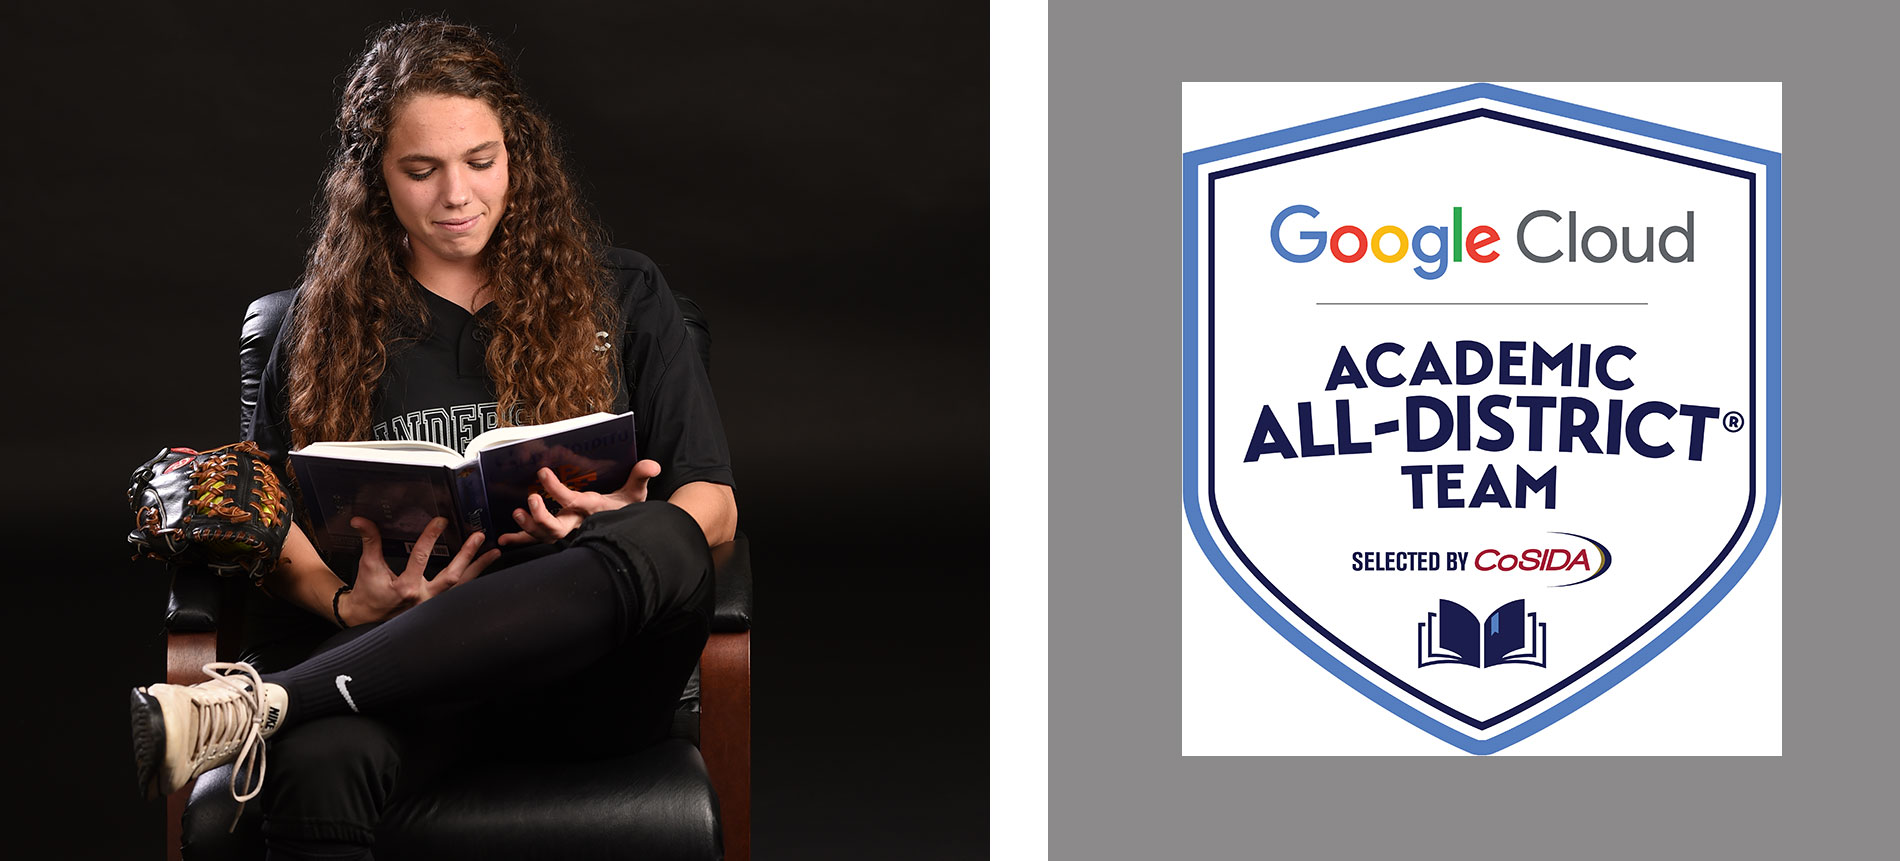 Grant Earns 2019 Google Cloud Academic All-District